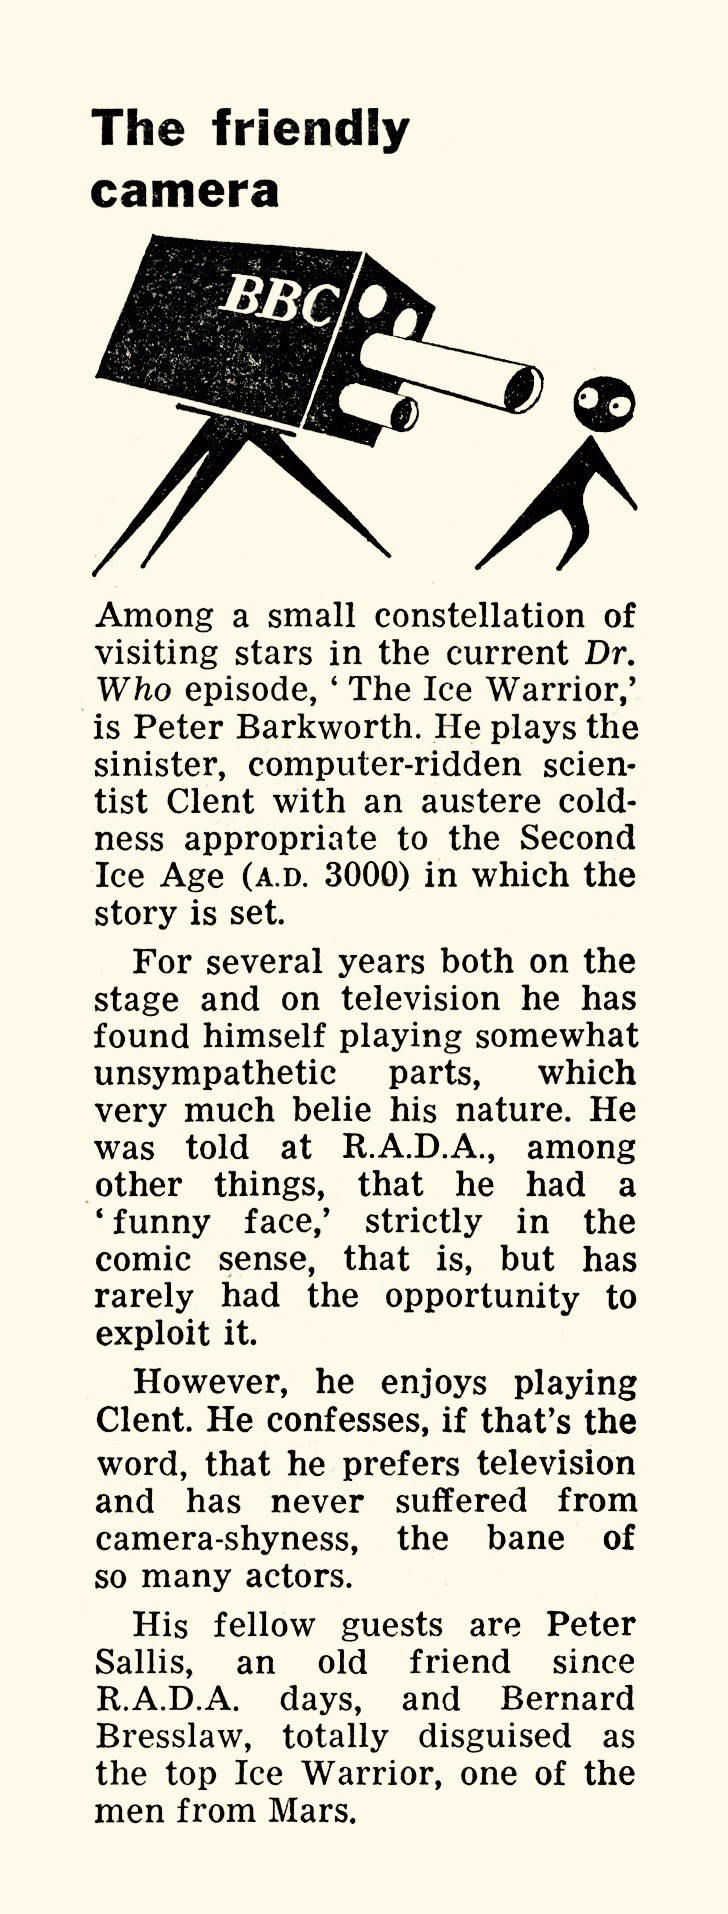 25.11.1967 article